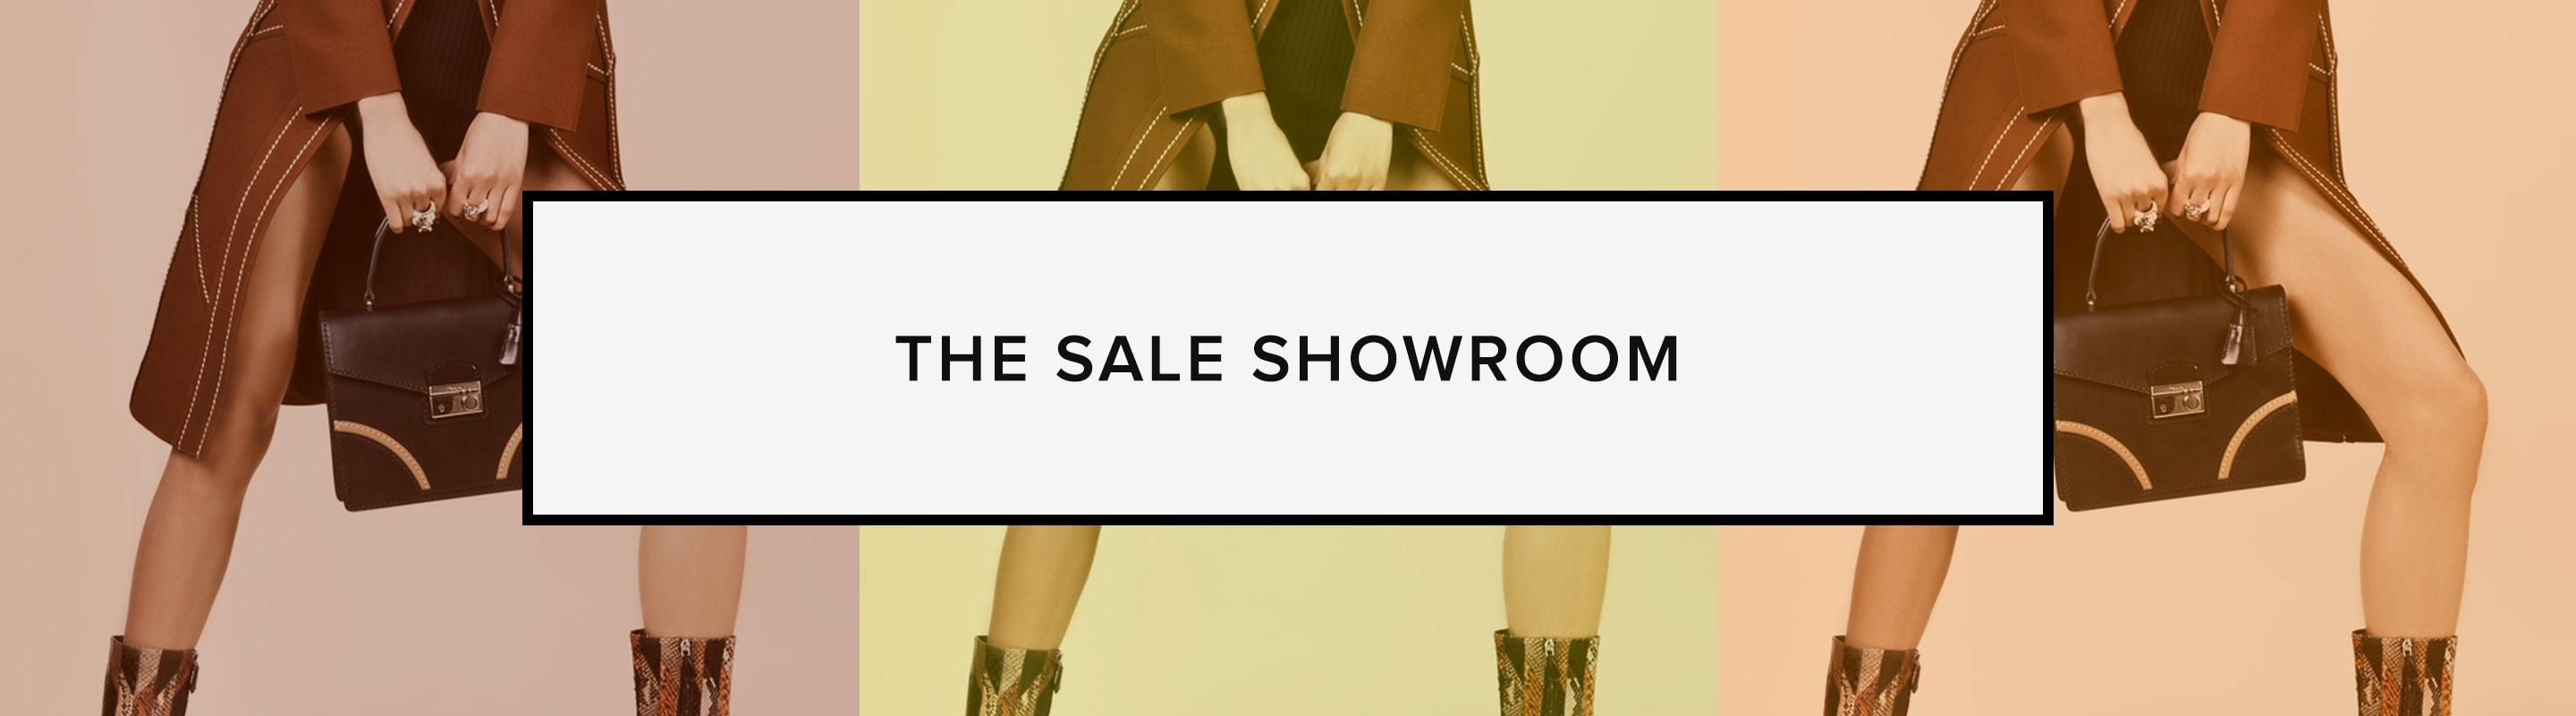 The Sale Showroom